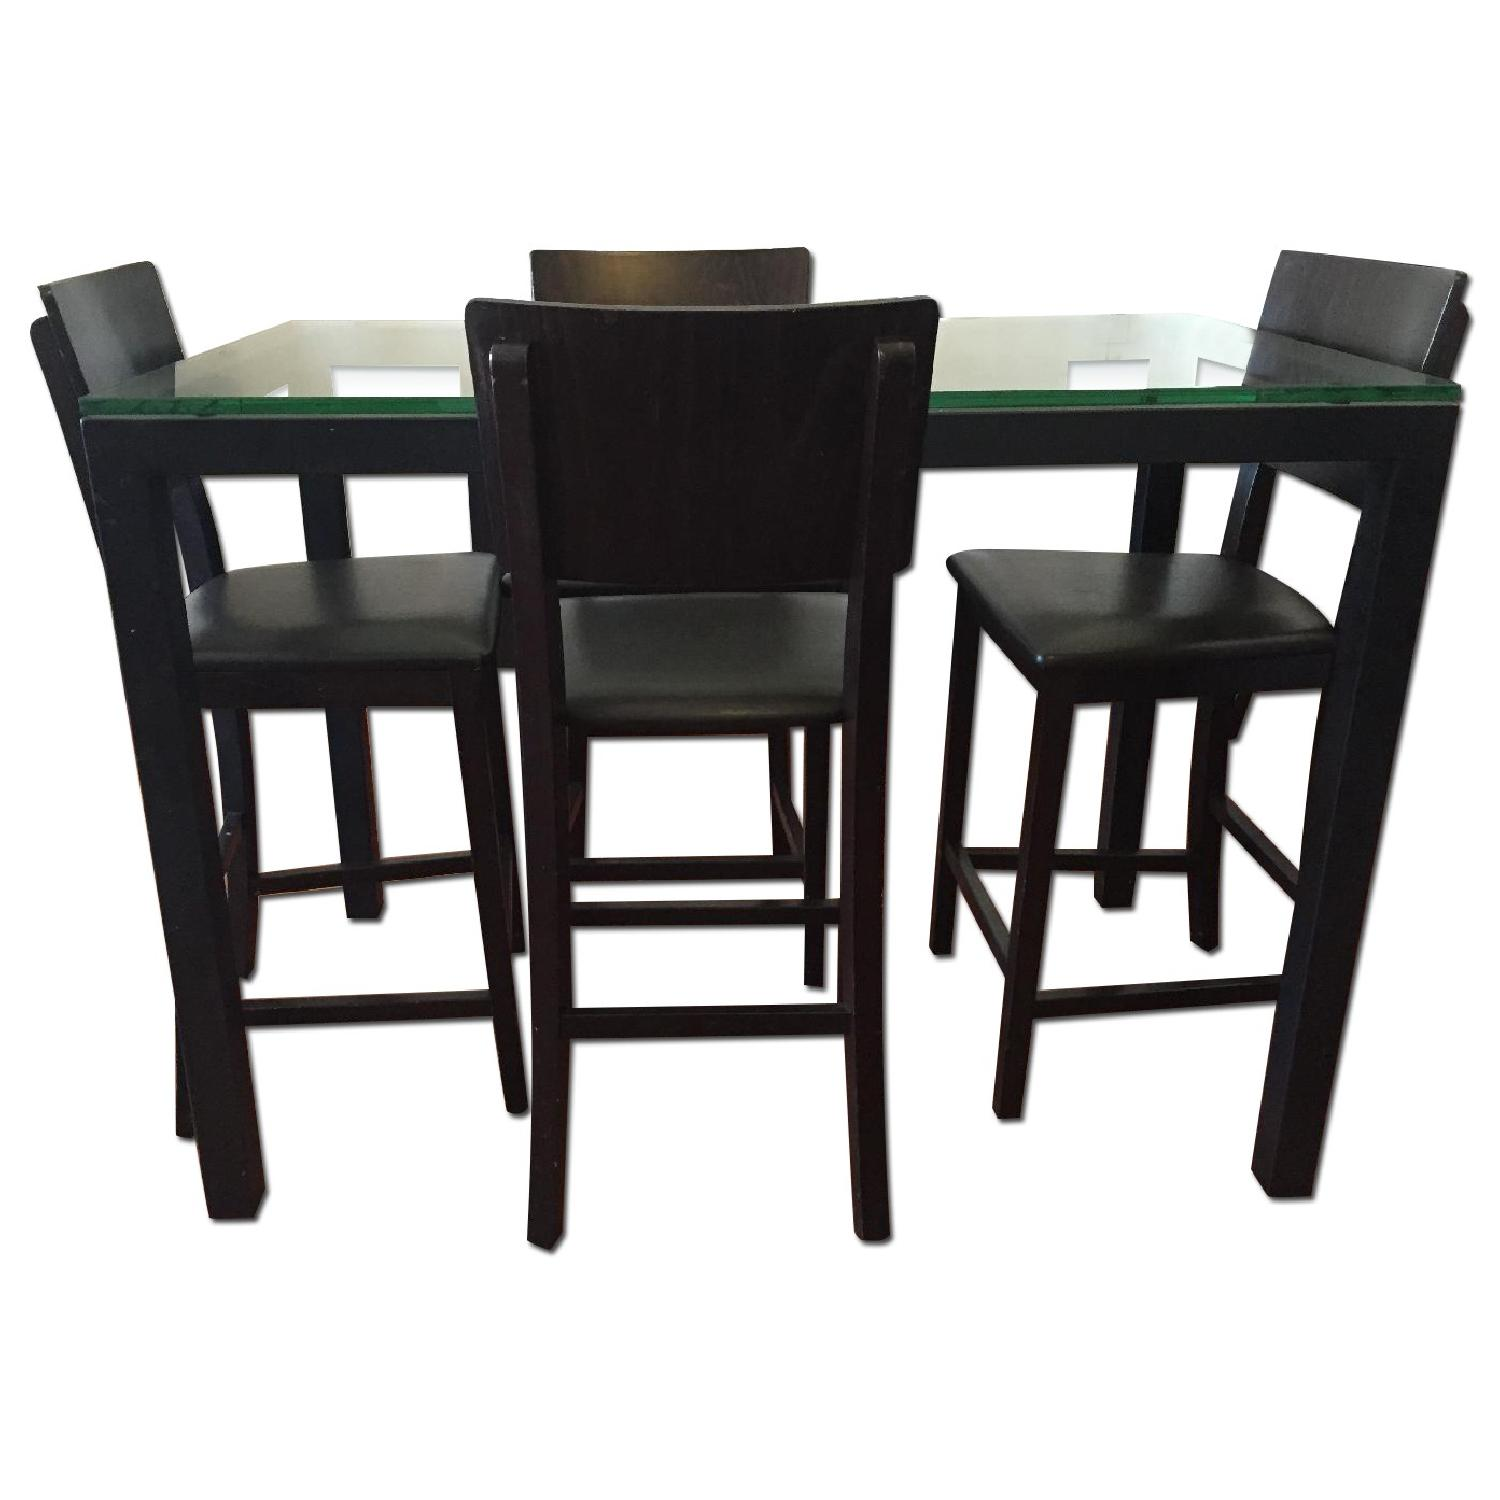 Crate & Barrel Clear Glass Top/ Natural Dark Steel Base Parsons High Dining Table w/ 4 Bar Stools - image-0